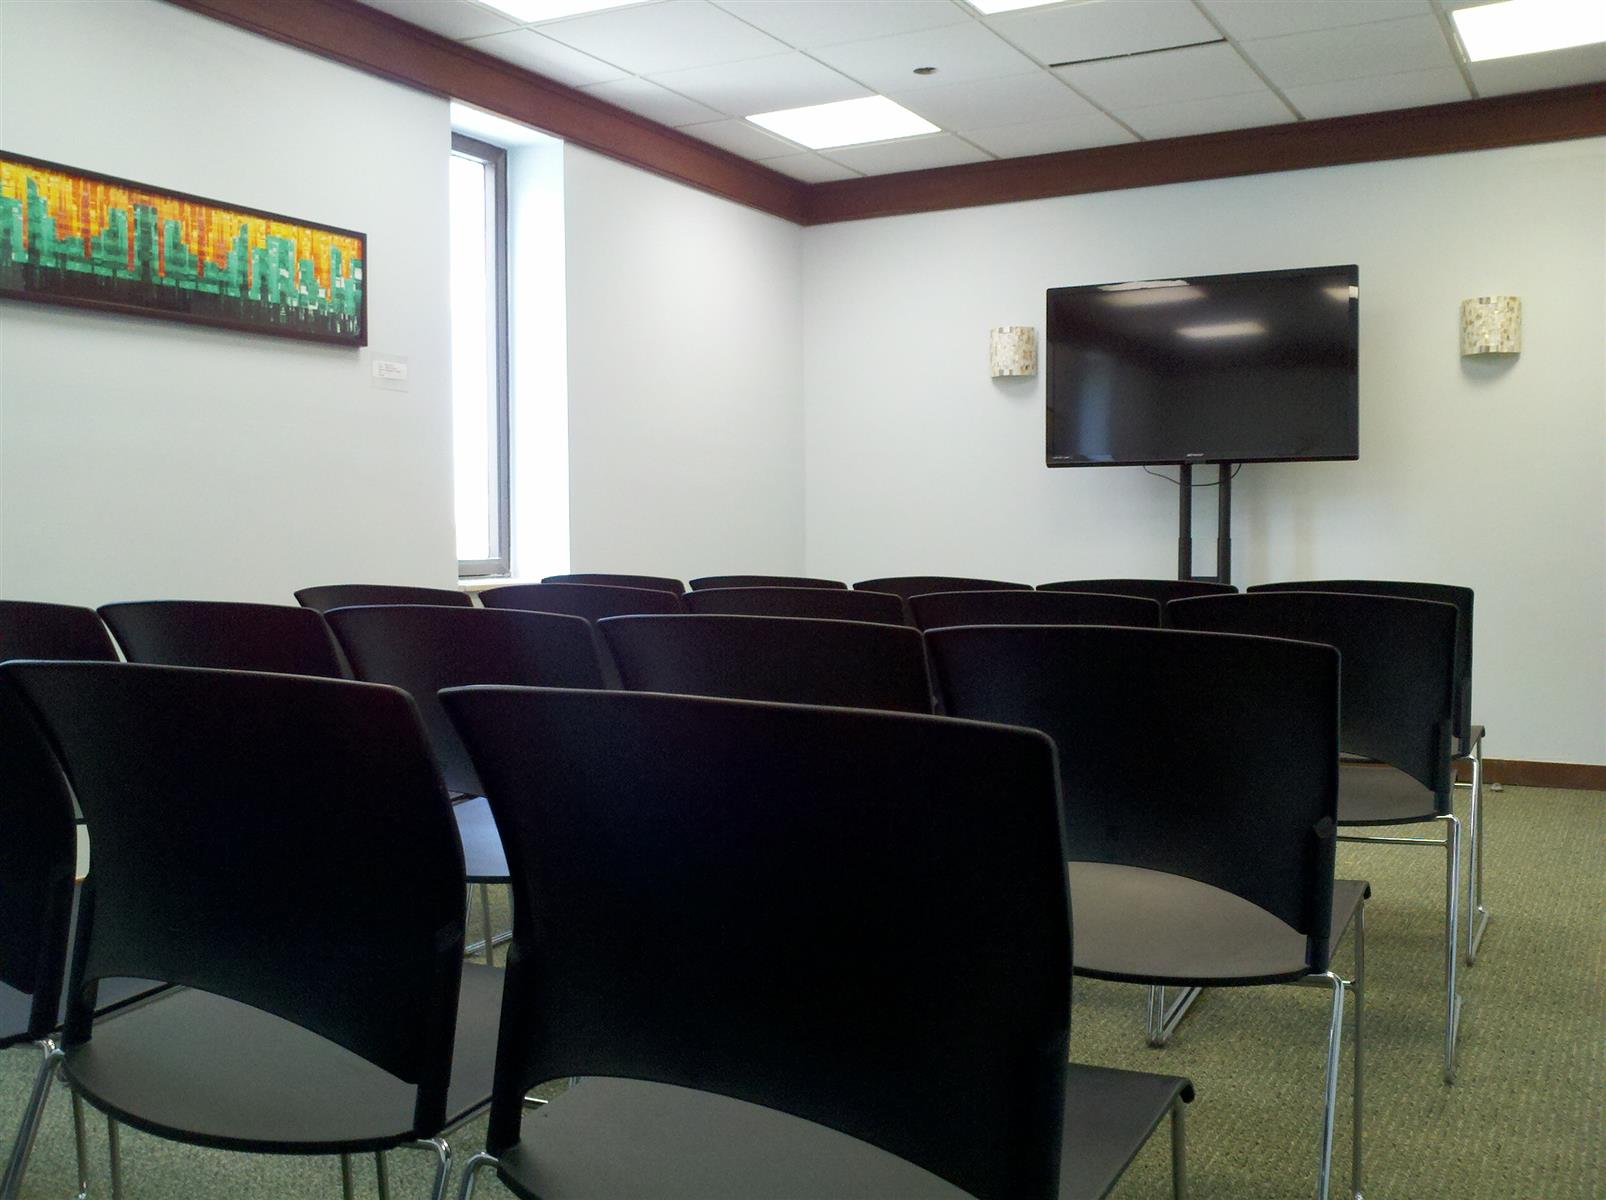 mindwarehouse - Presentation Room